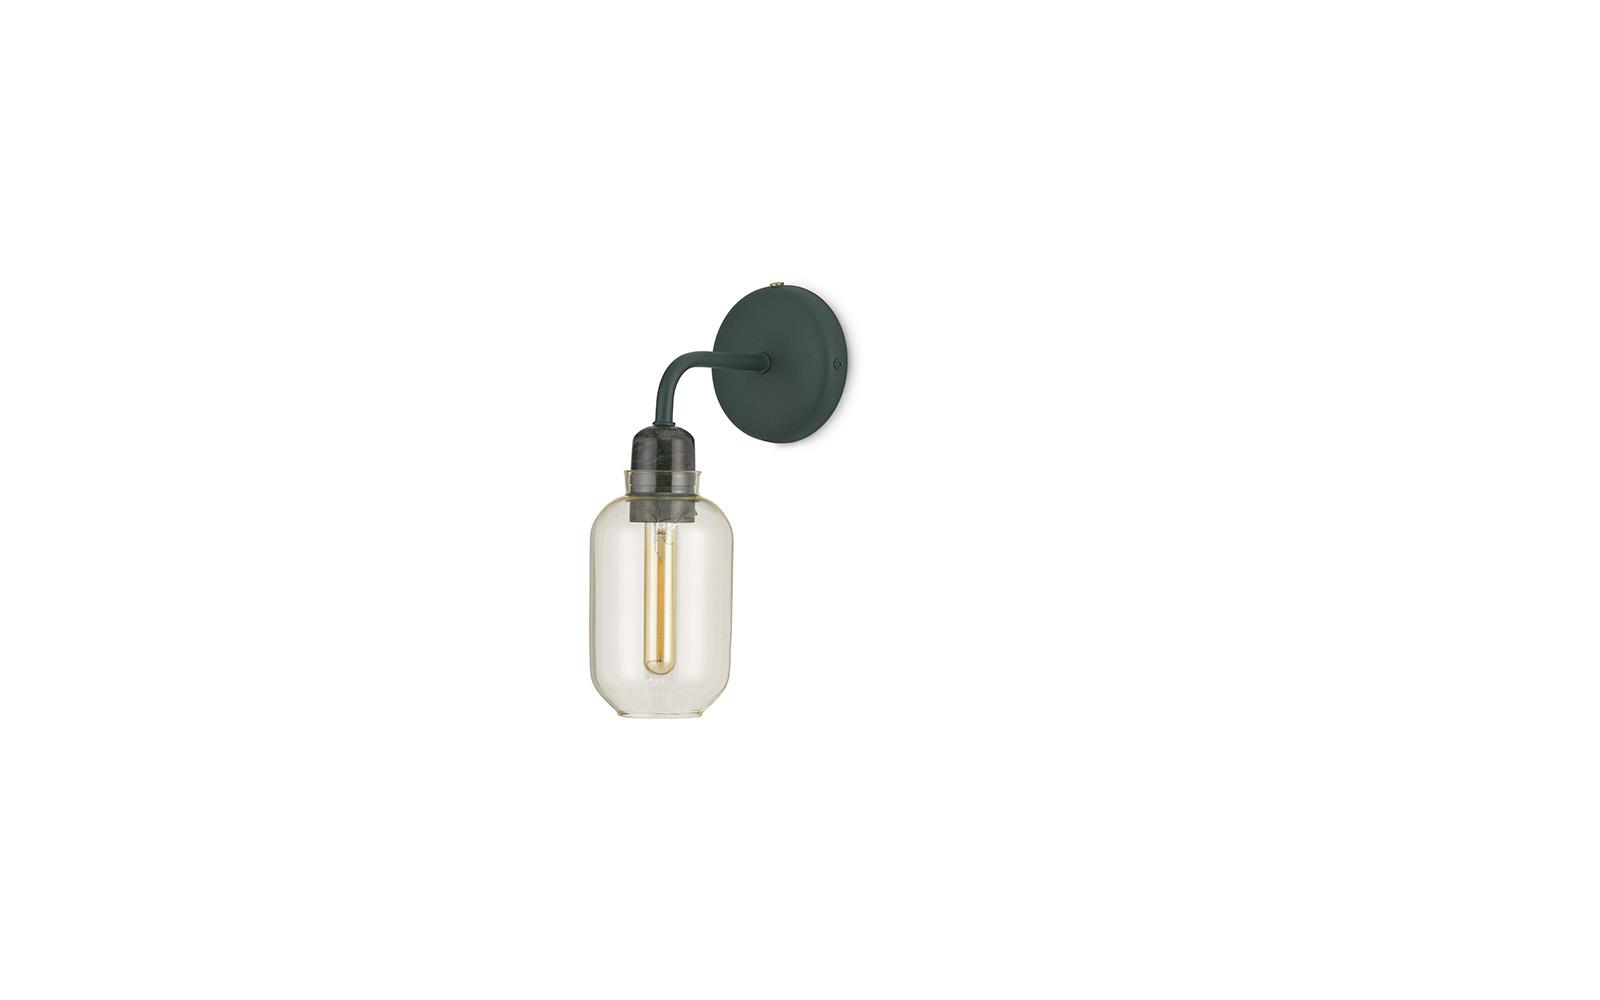 Amp Wall Lamp EU1